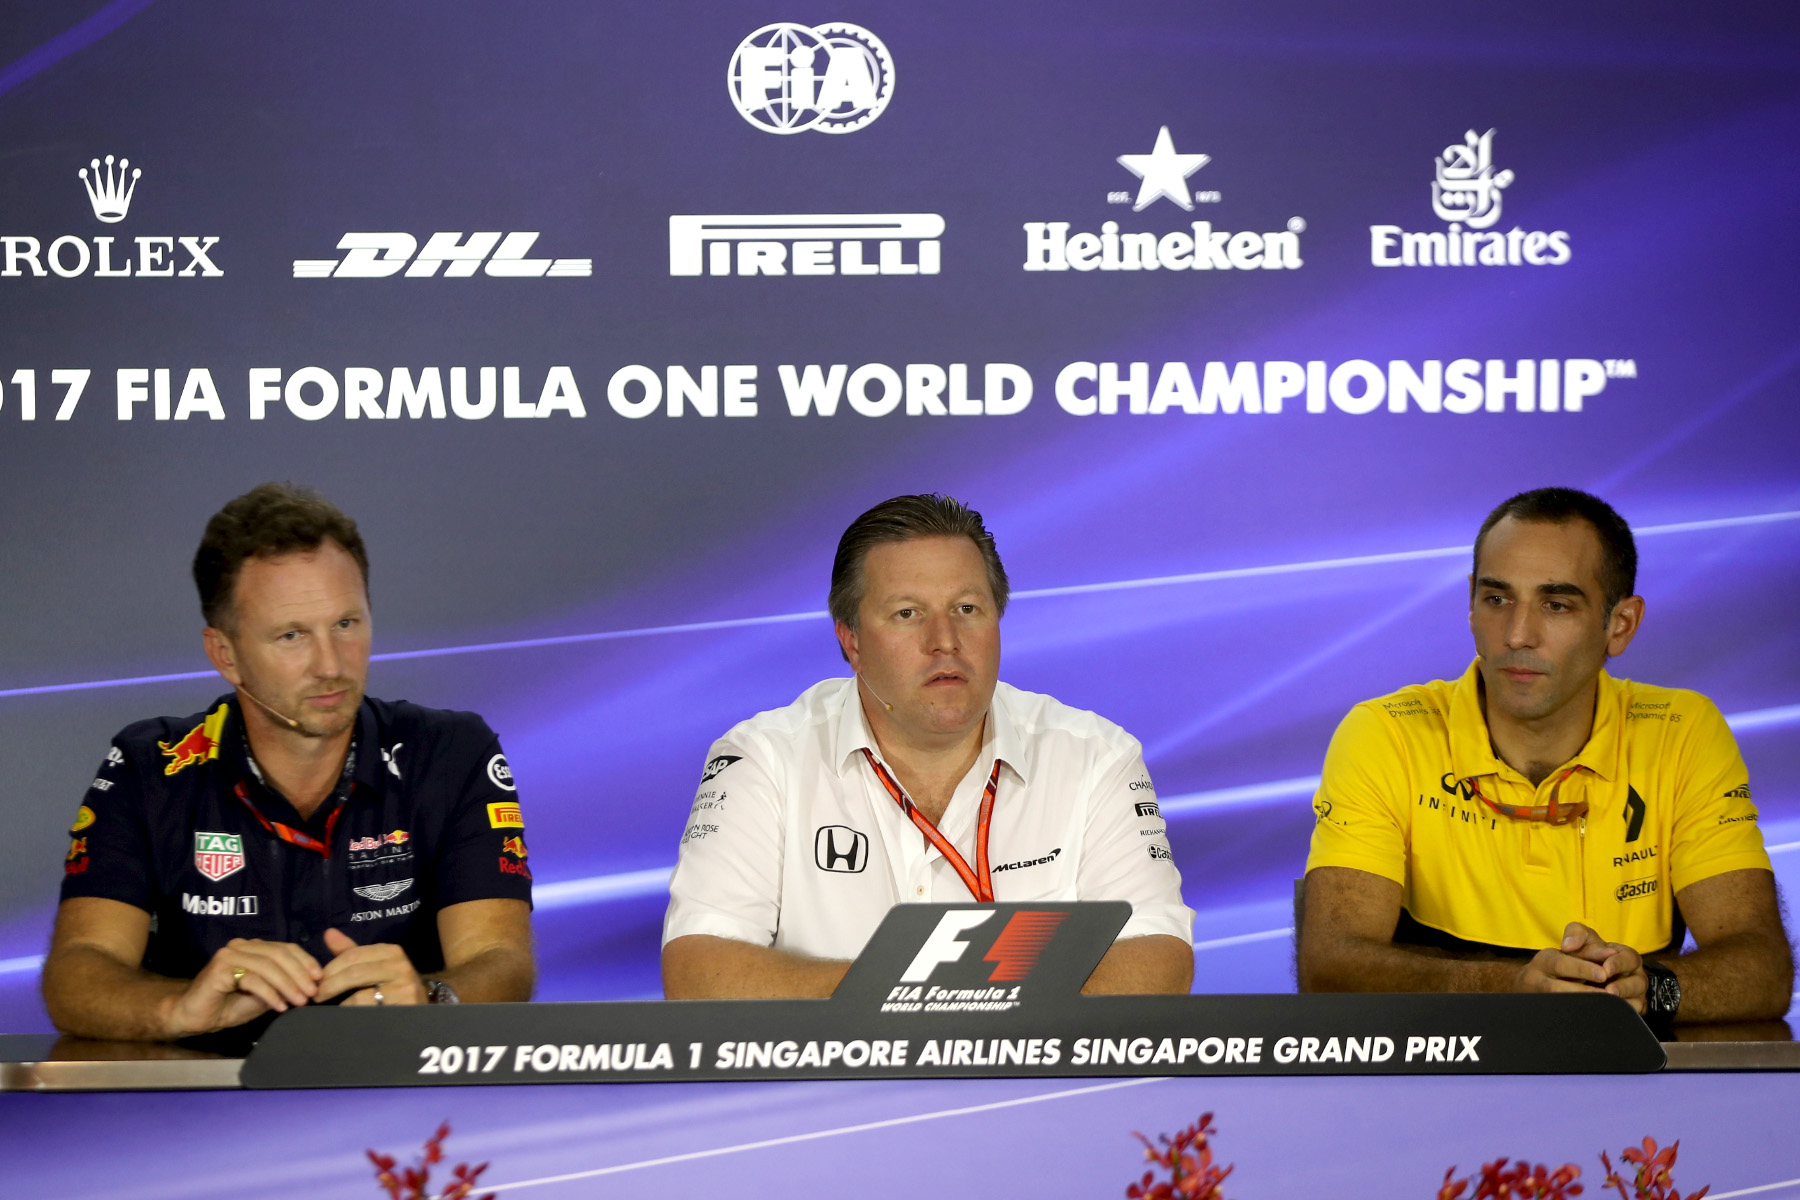 Red Bull Racing principal Christian Horner, McLaren executive director Zak Brown, and Renault Sport managing director Cyril Abiteboul at the 2017 Singapore Grand Prix.